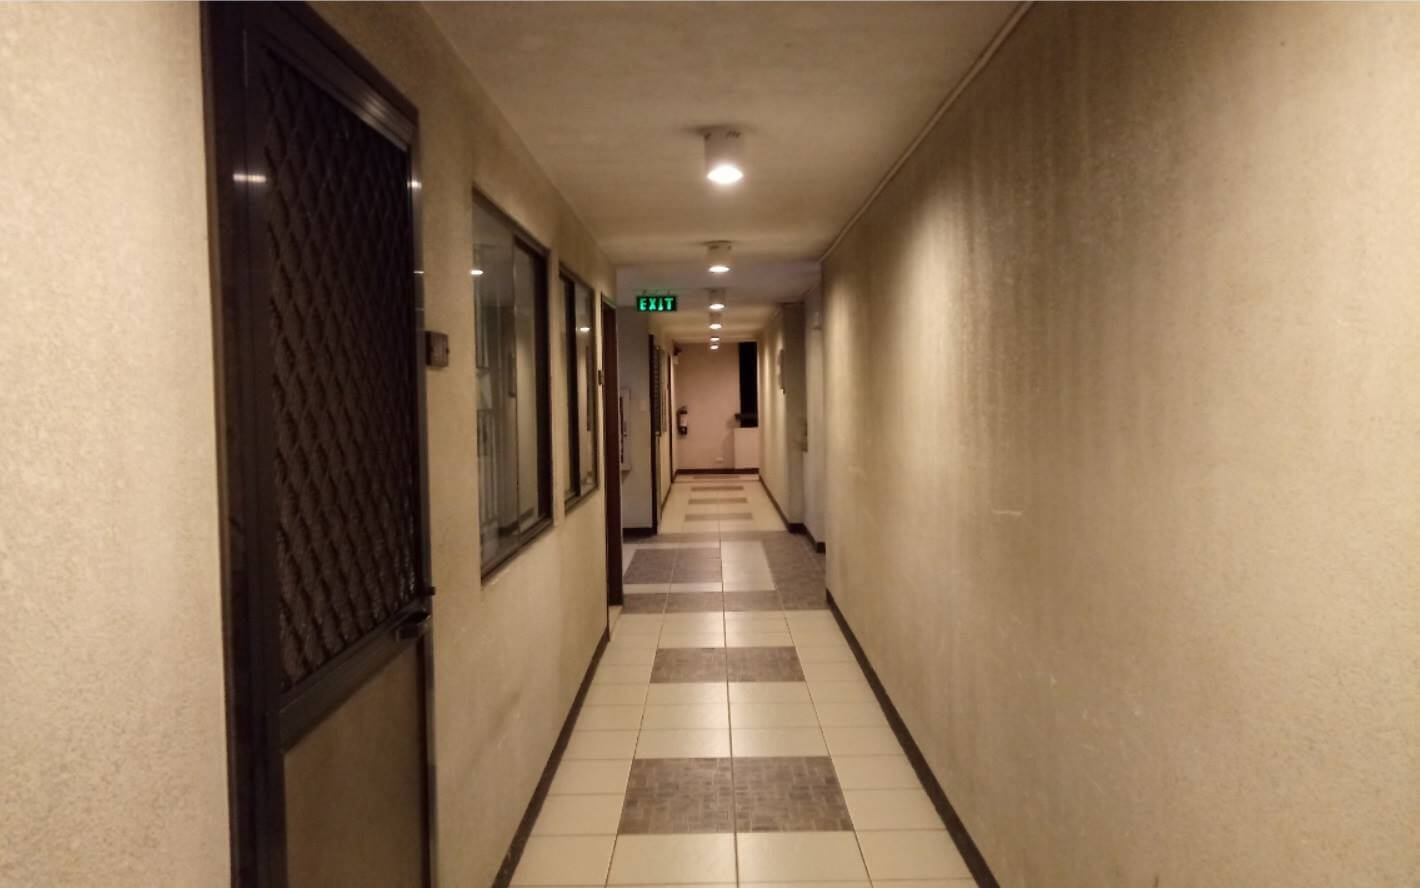 LG Stylus 3 Review - Rear Camera Sample - Hallway at Night (without HDR)